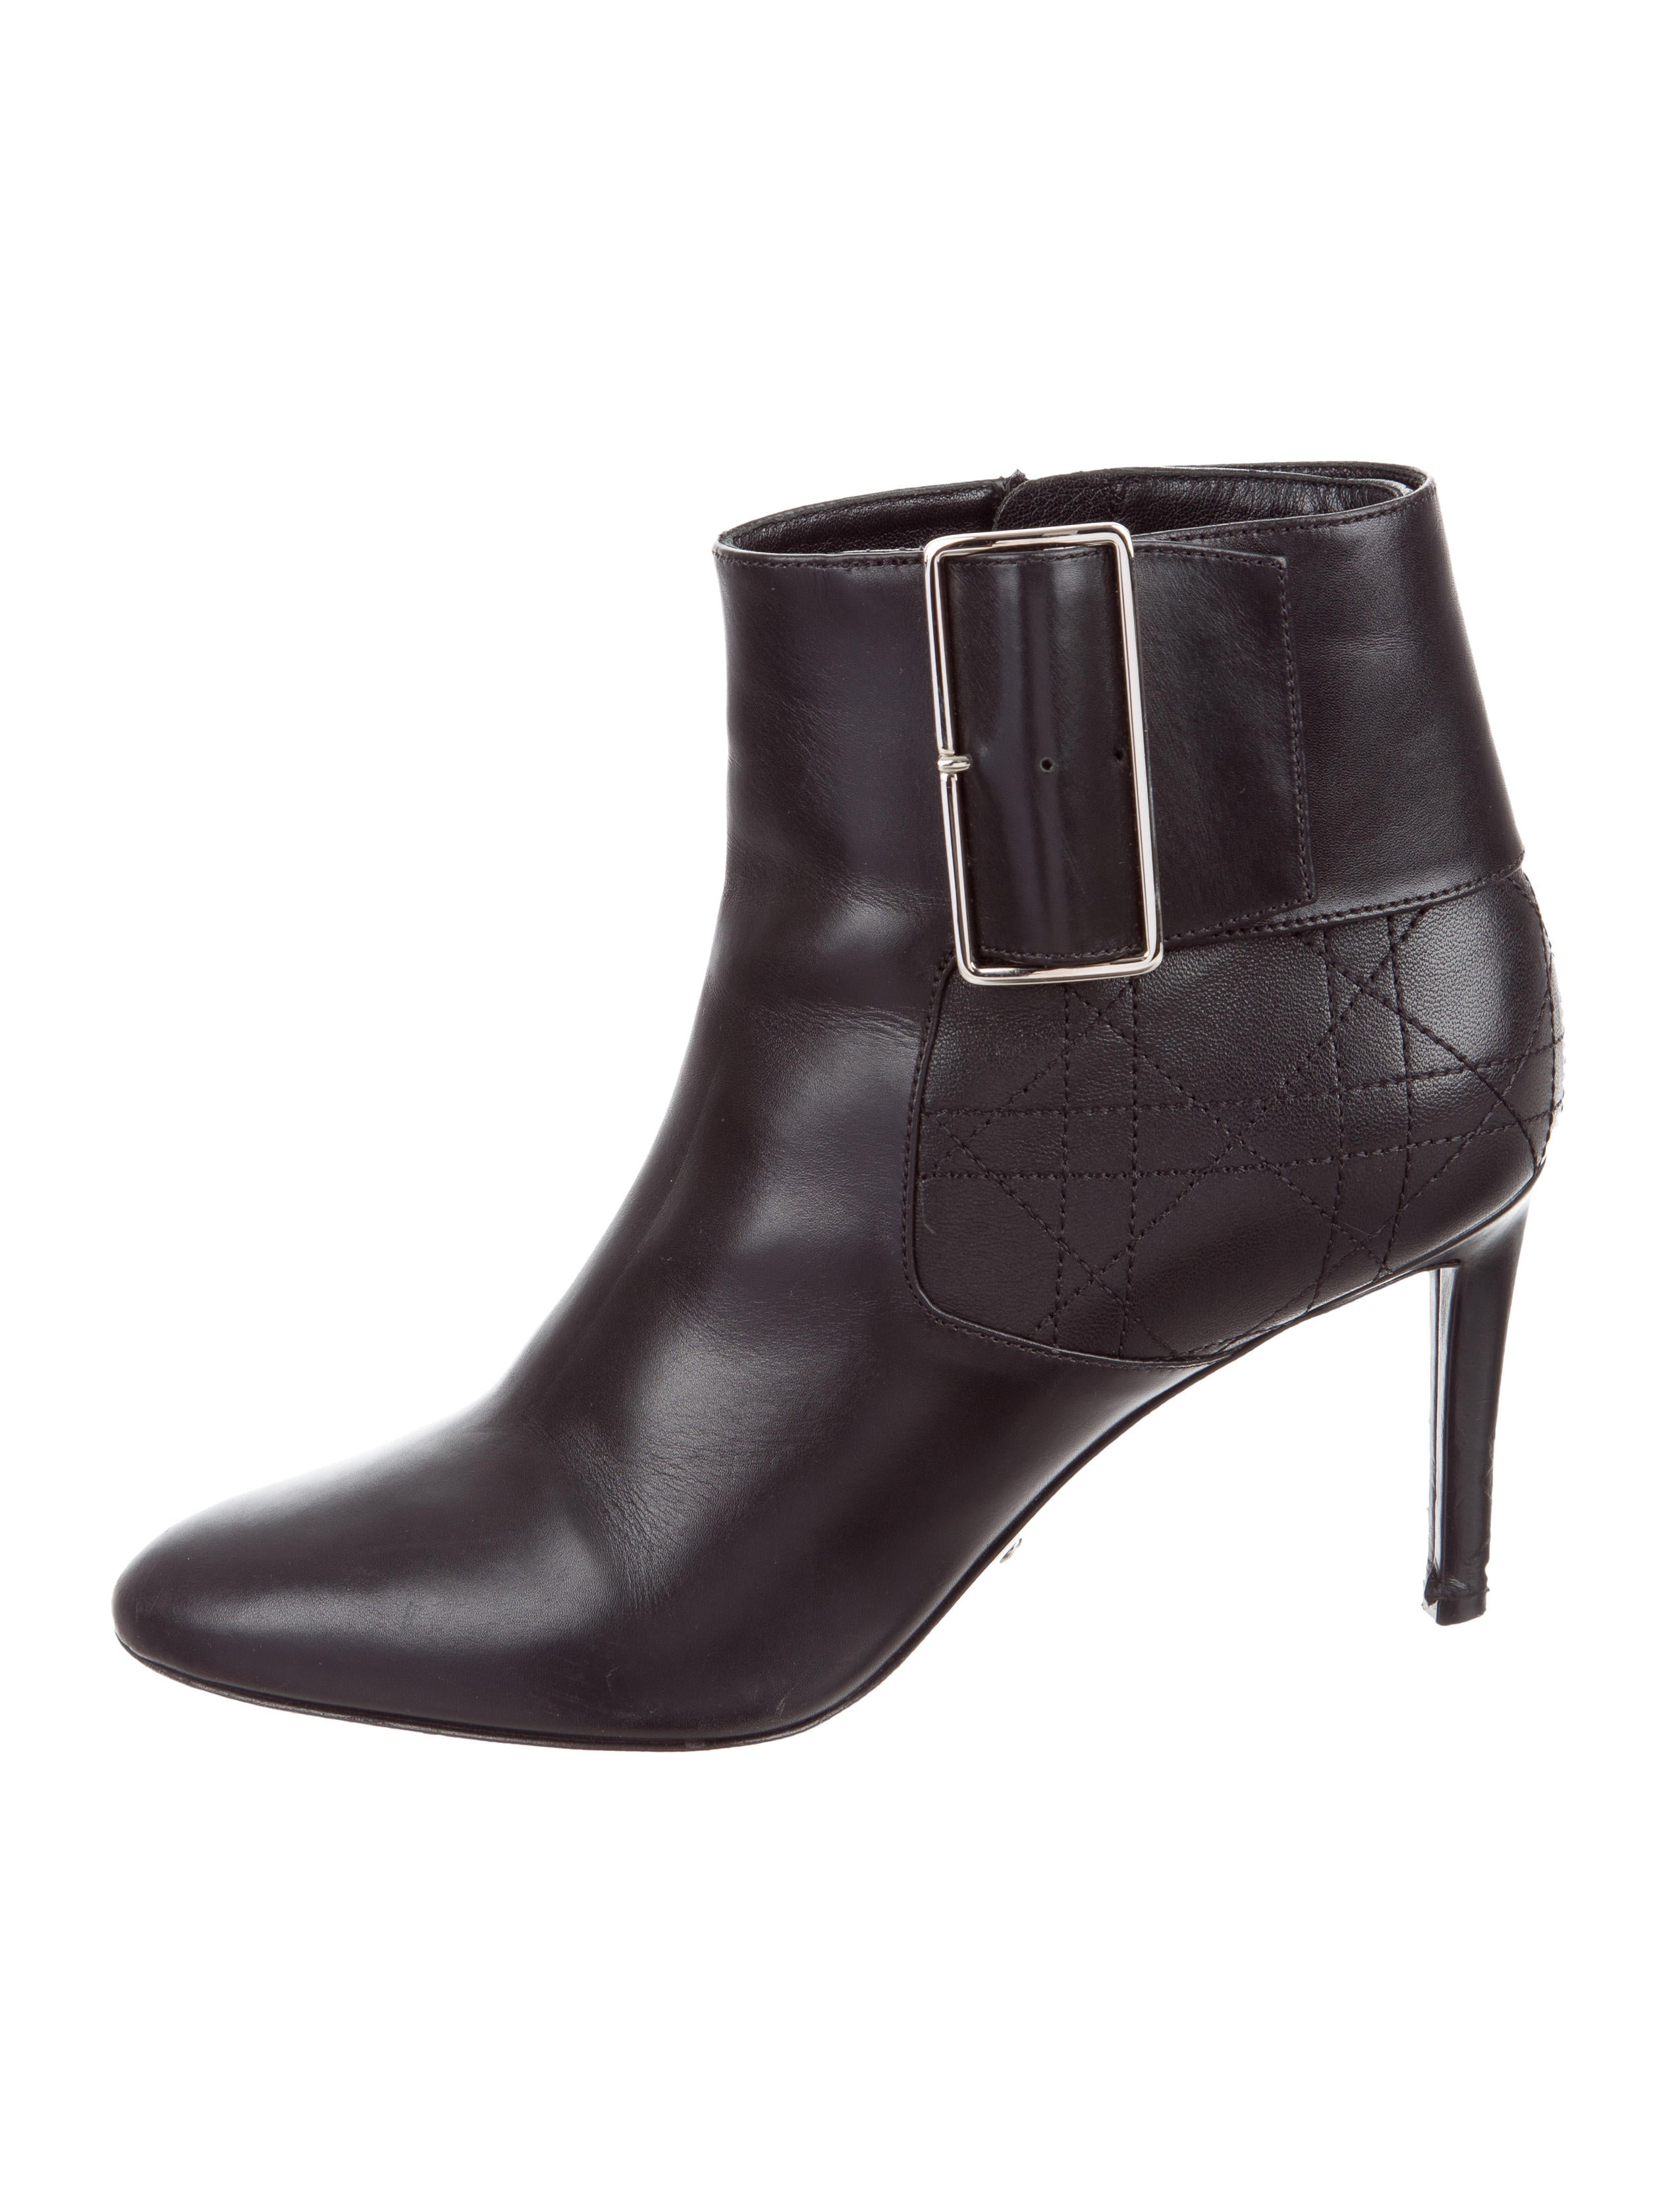 for sale wholesale price cheap explore Christian Dior Leather Cannage Ankle Boots footlocker pictures for sale cheap sale store fX7idcXGN